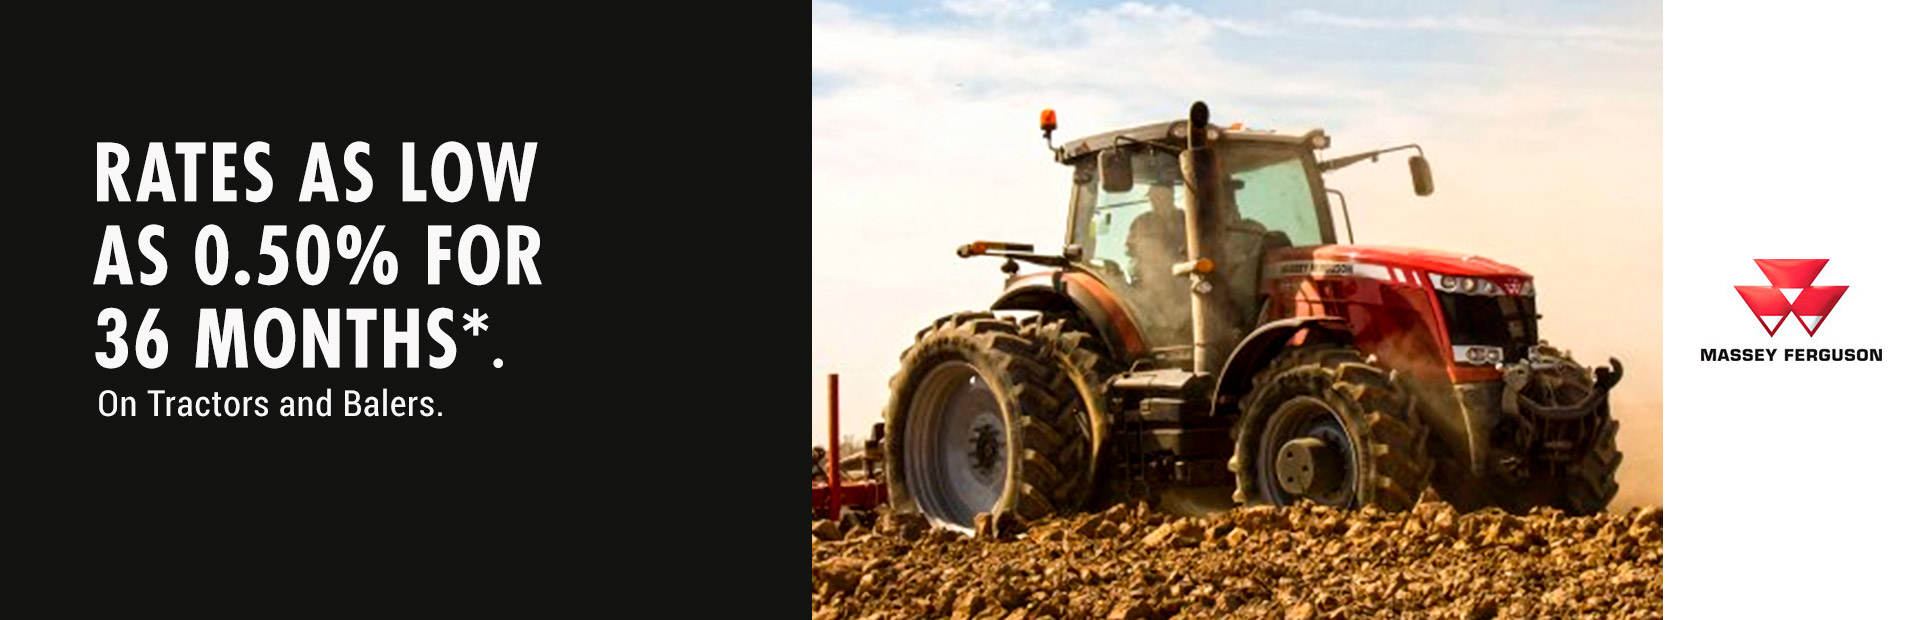 Massey Ferguson: 0.50% for 36 Months on Tractors and Balers